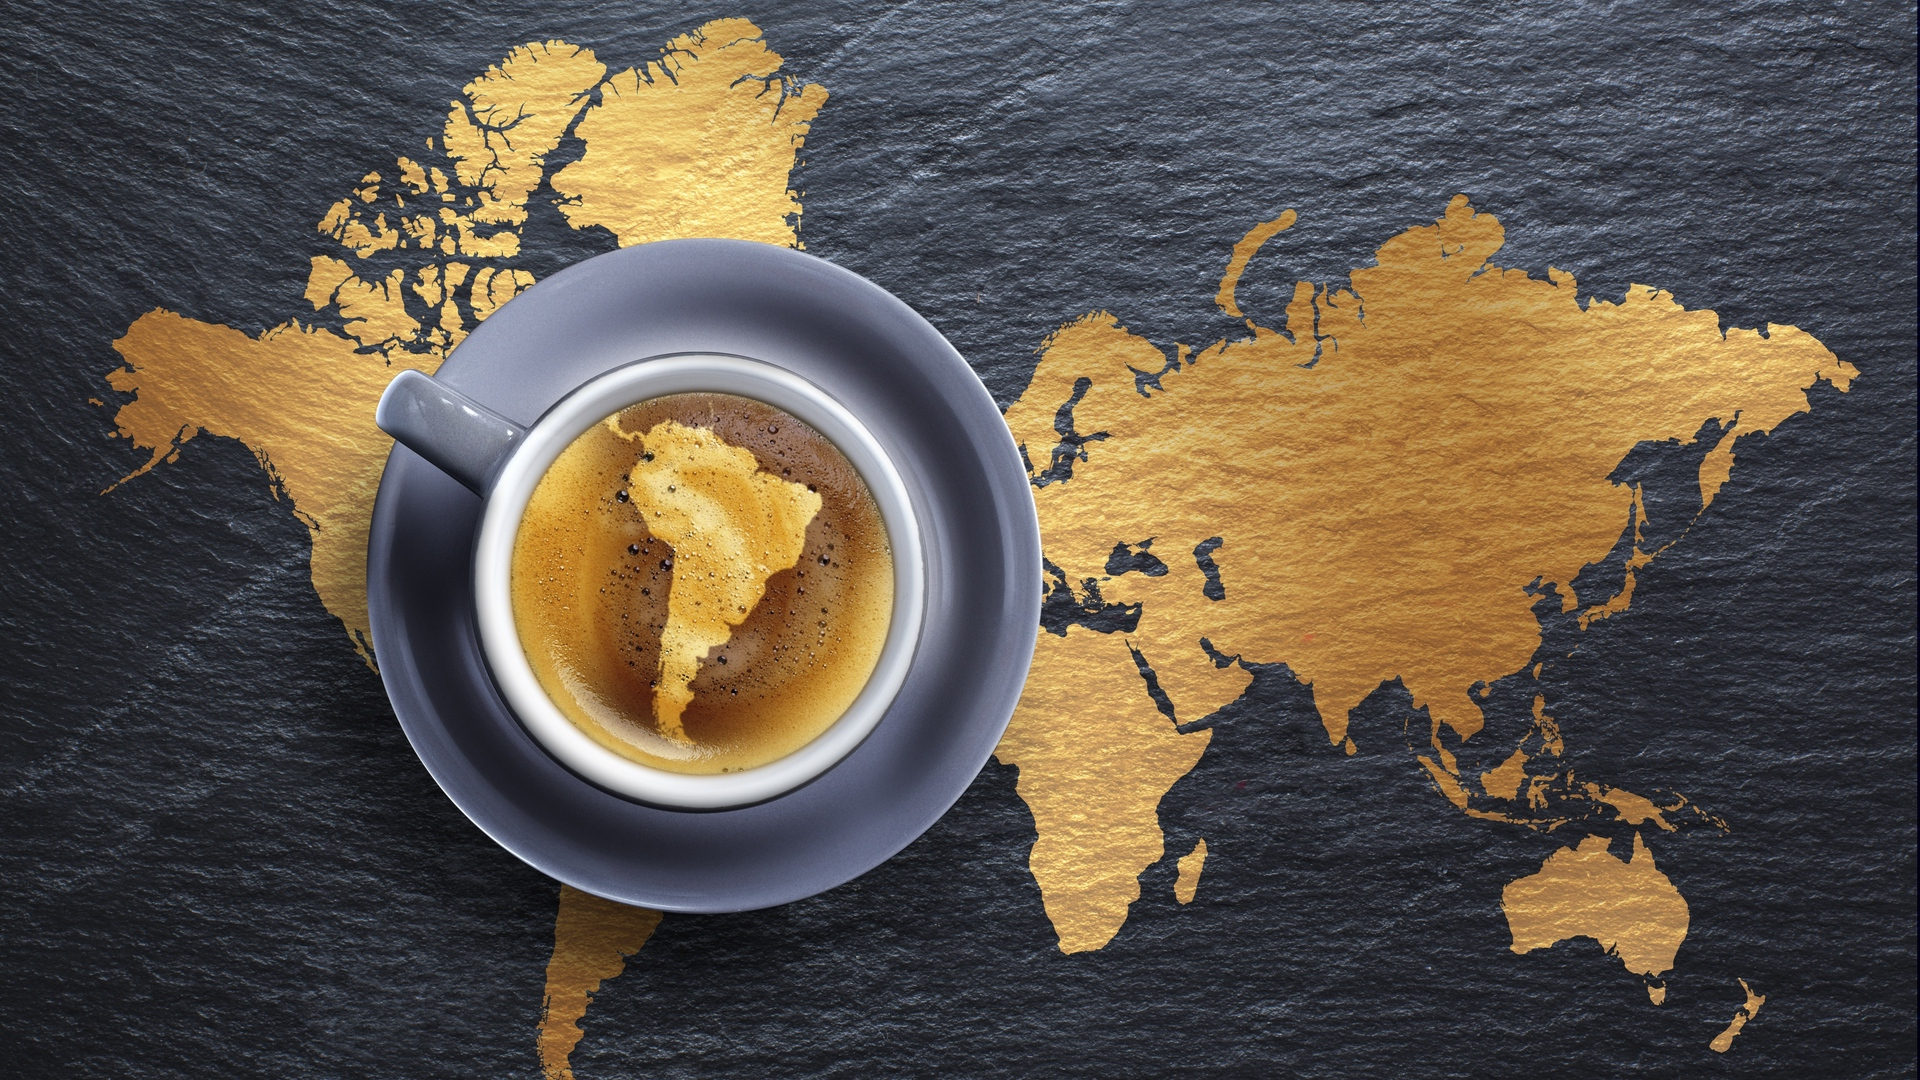 coffee_foam_beverage_cup_saucer_creative_continents_84944_1920x1080